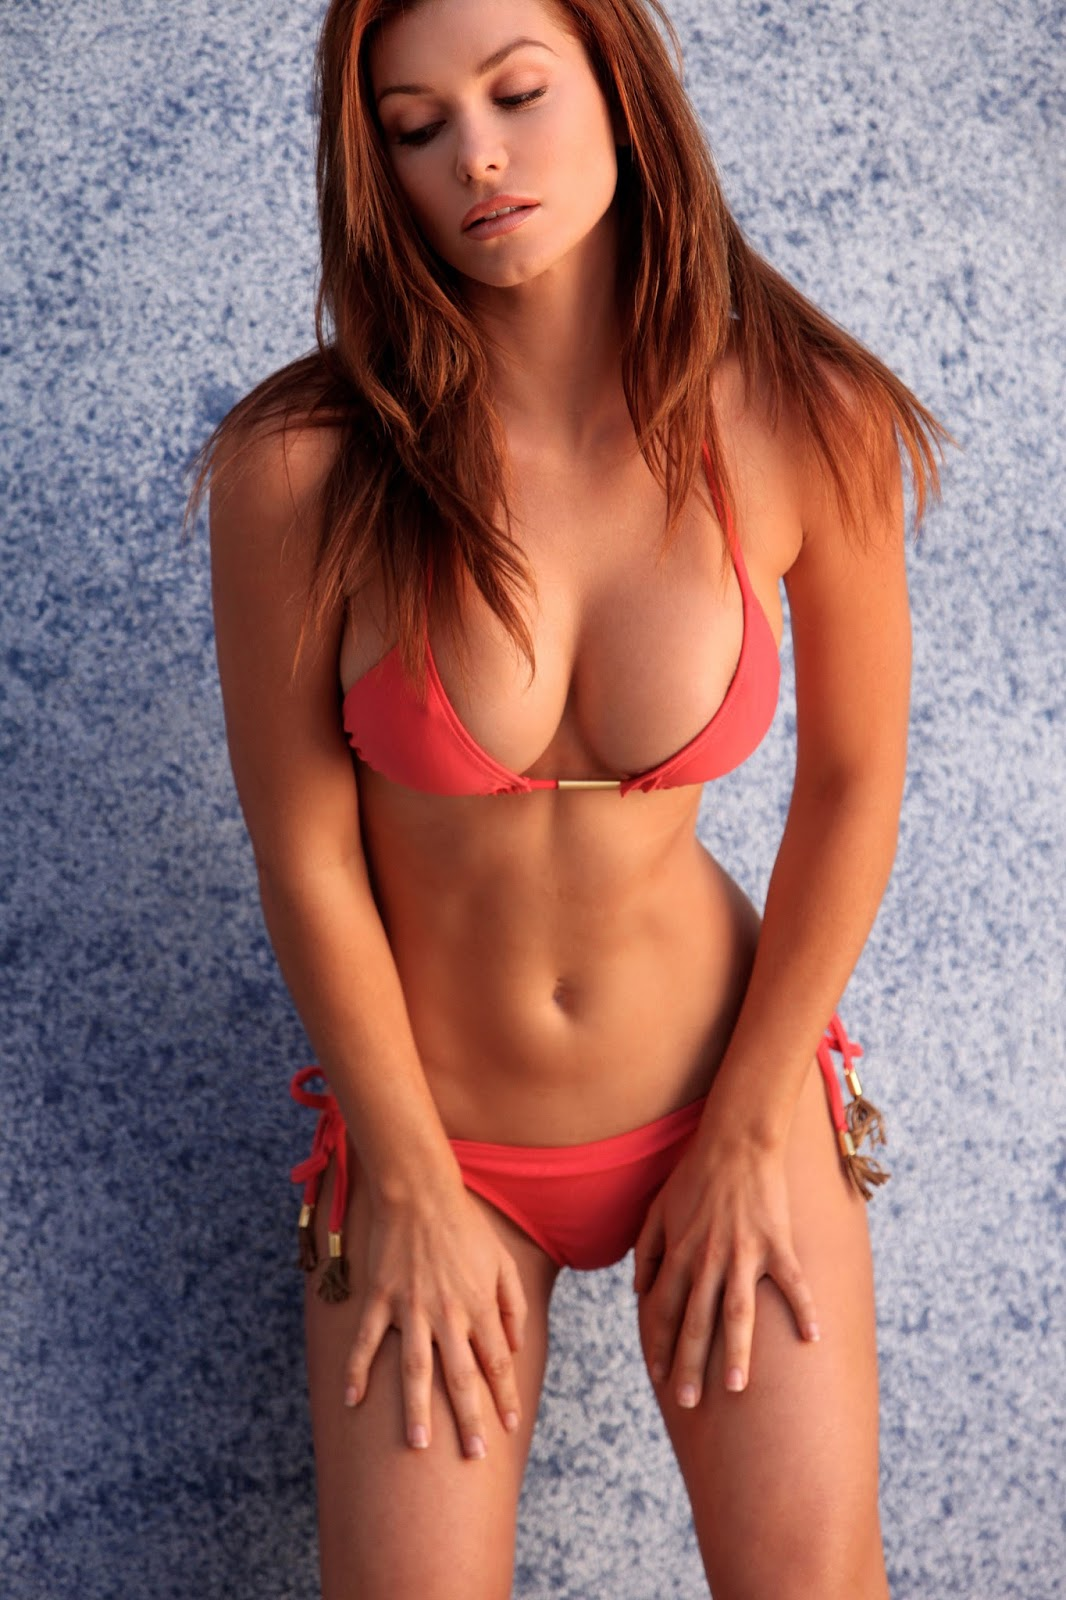 Red Hair Sexy Girl